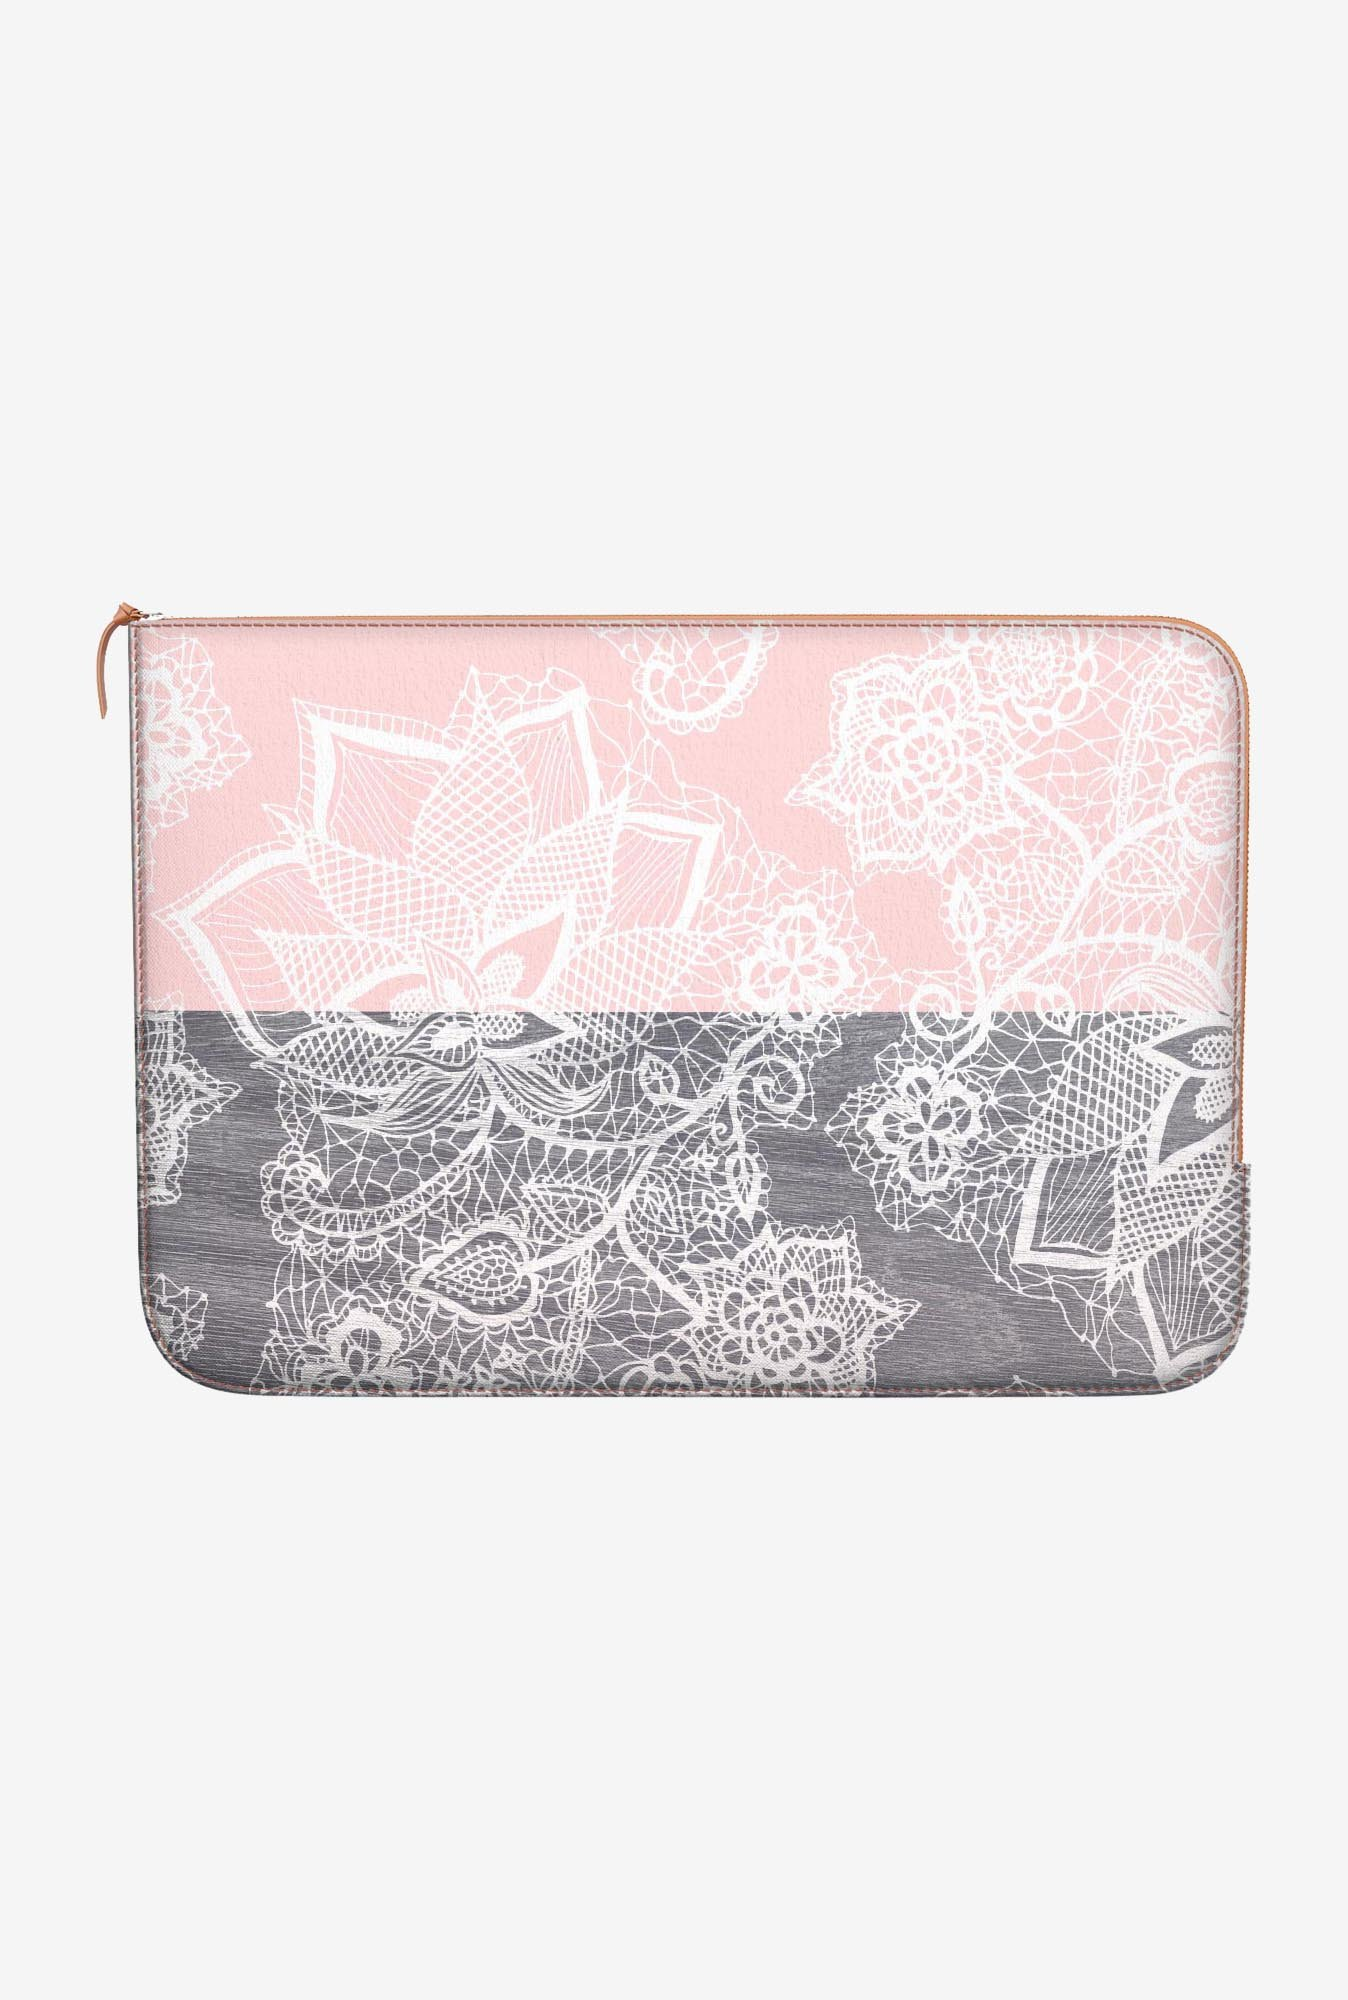 DailyObjects Pink Blocks MacBook Pro 15 Zippered Sleeve